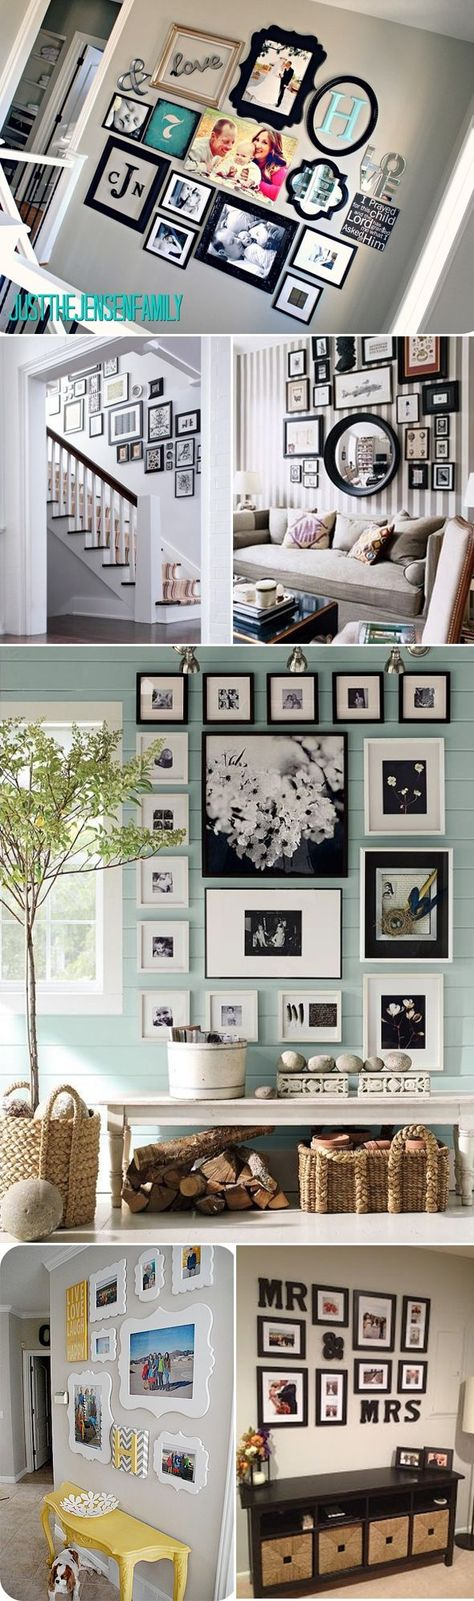 Gallery walls - elegant decor Artwork, photography display ideas. #Gallery